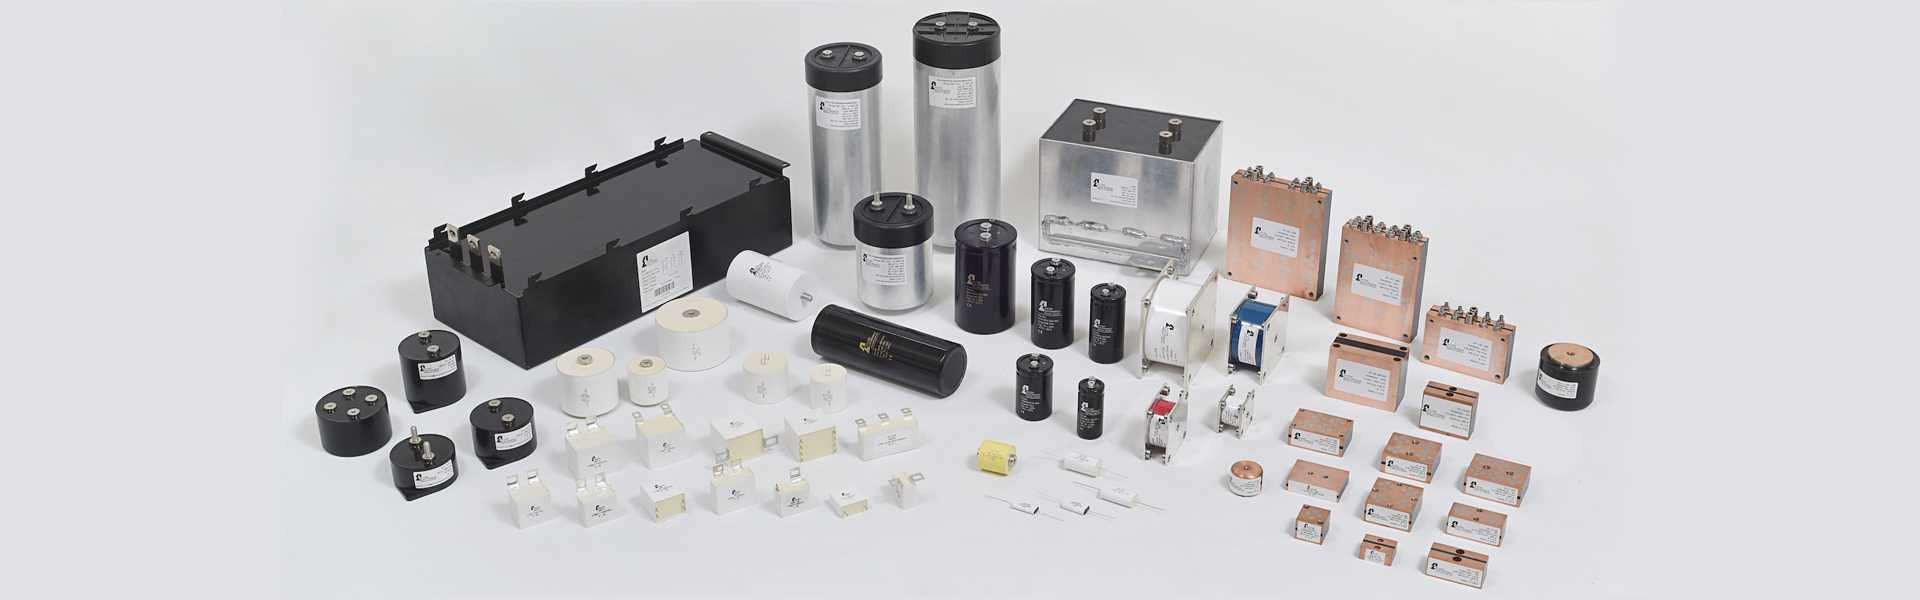 Alcon_Electronics_Capacitor_Product_Range